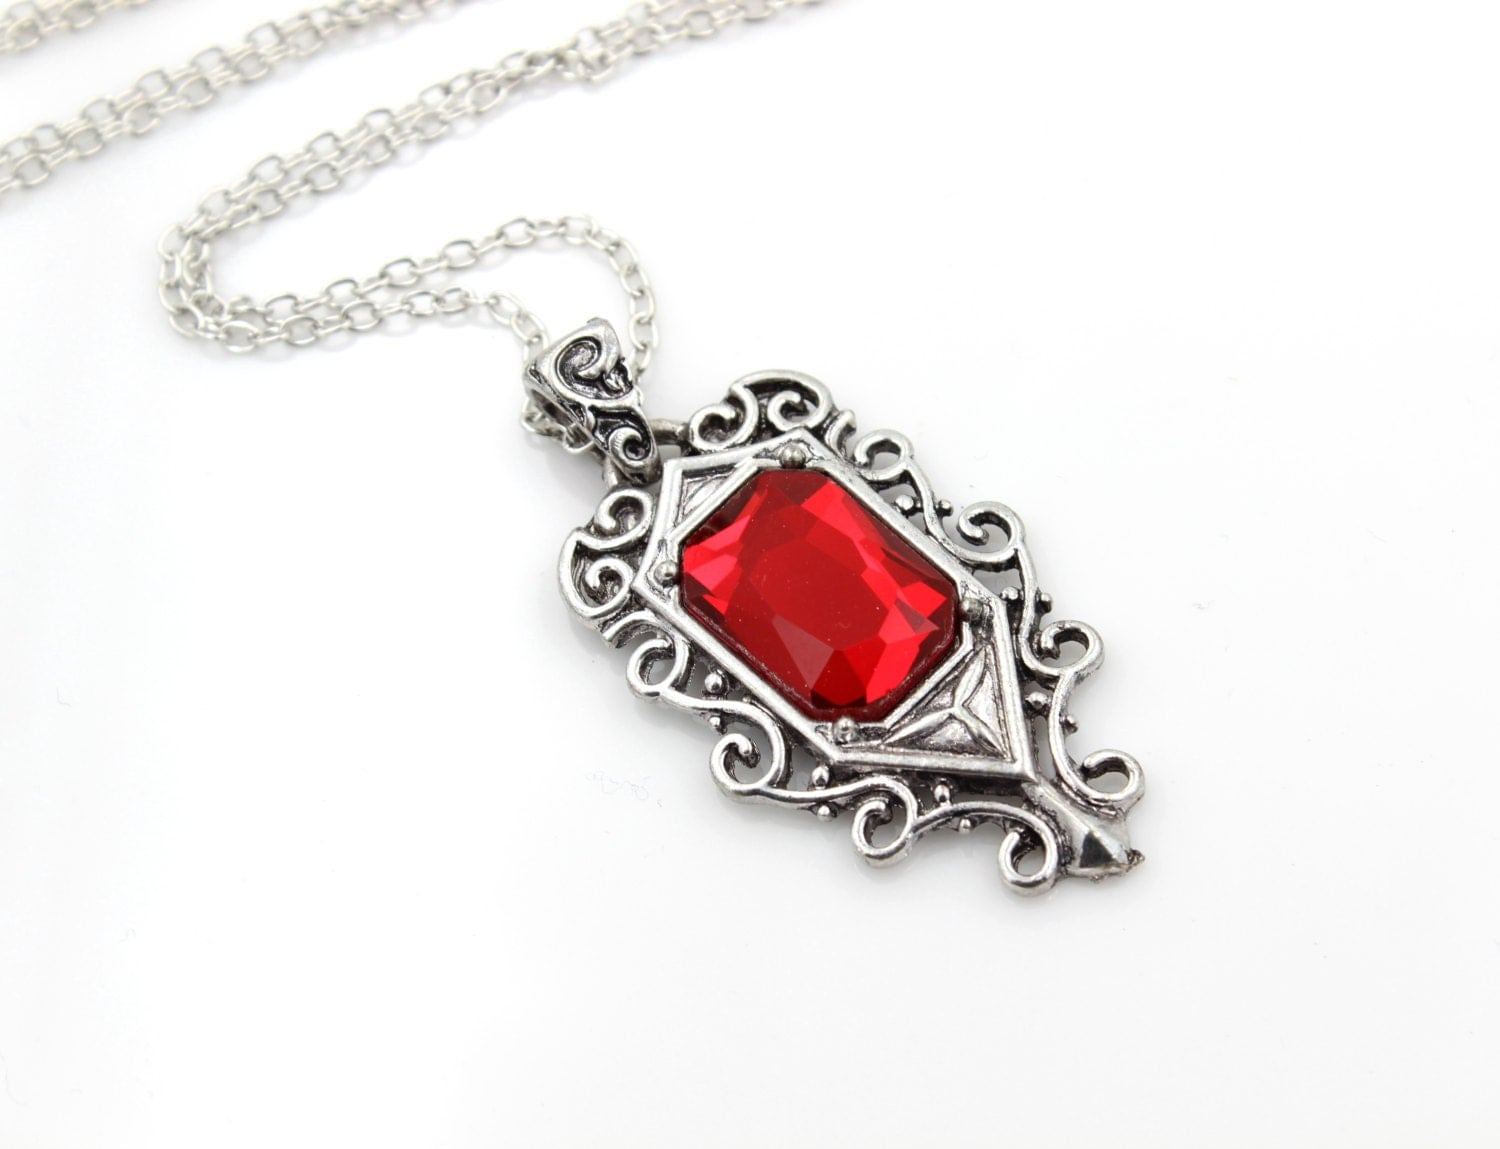 ruby necklace pendant vintage style by glazedblackcherry